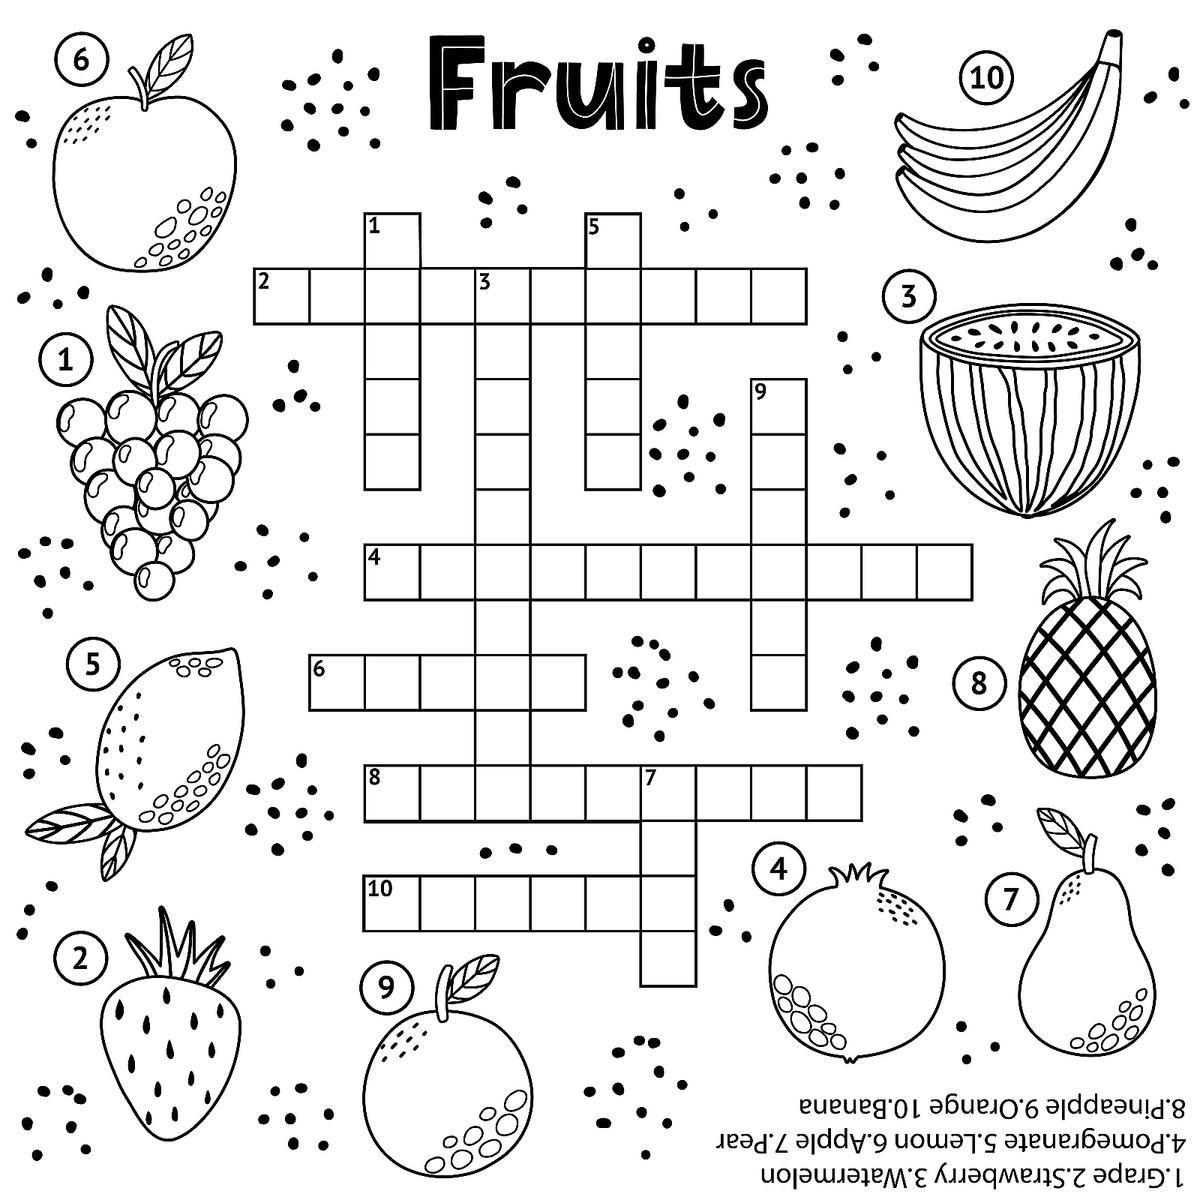 Crossword Puzzles For Kids Fun Free Printable Crossword Puzzle Coloring Page Activities For Children Printables 30seconds Mom Free Printable Crossword Puzzles Crossword Puzzles Printable Crossword Puzzles [ 1200 x 1200 Pixel ]